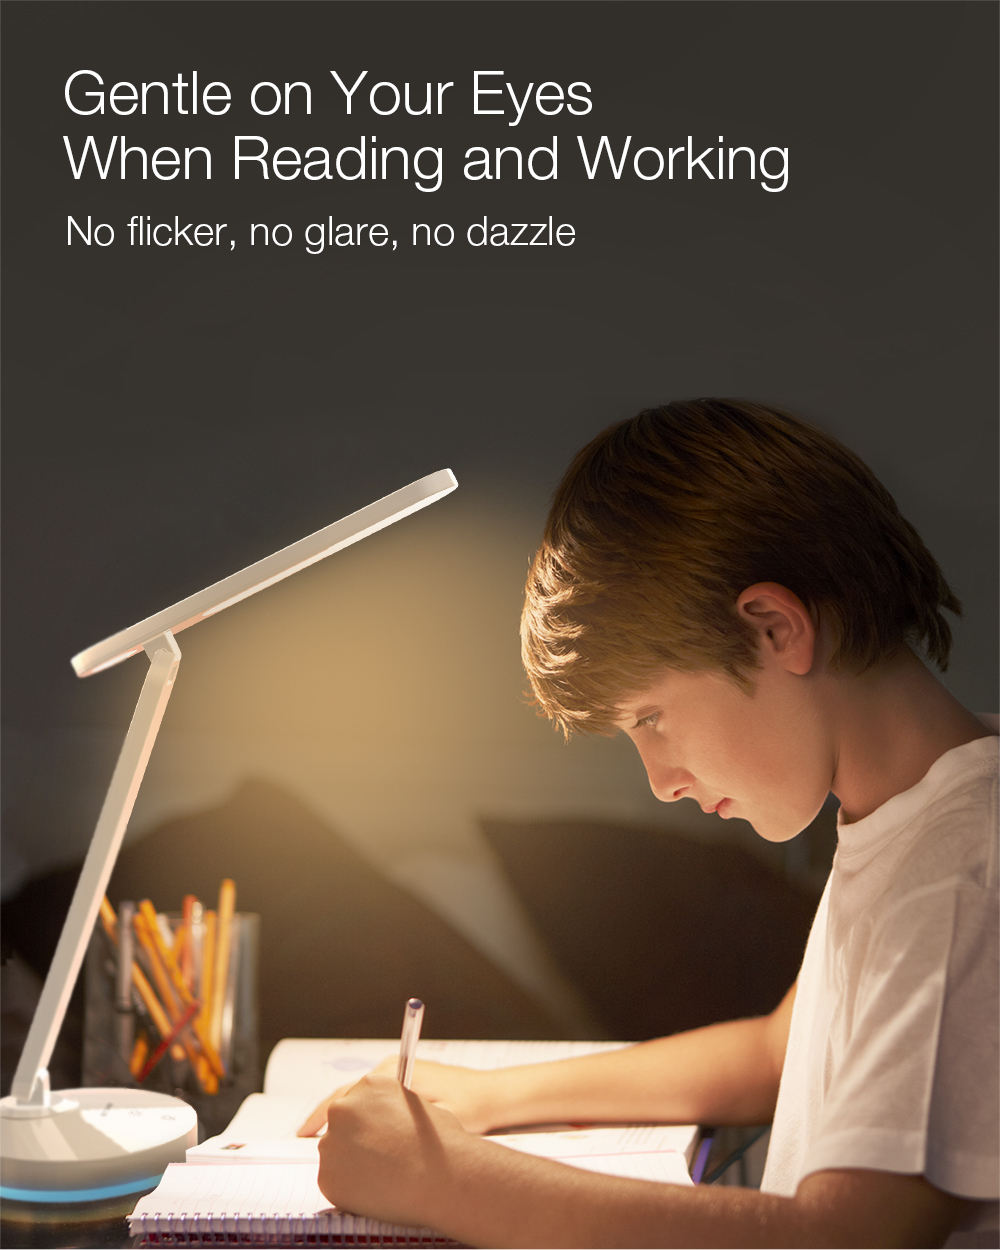 BlitzWolf Table Lamp is suitable for reading and study and gentle to eyes